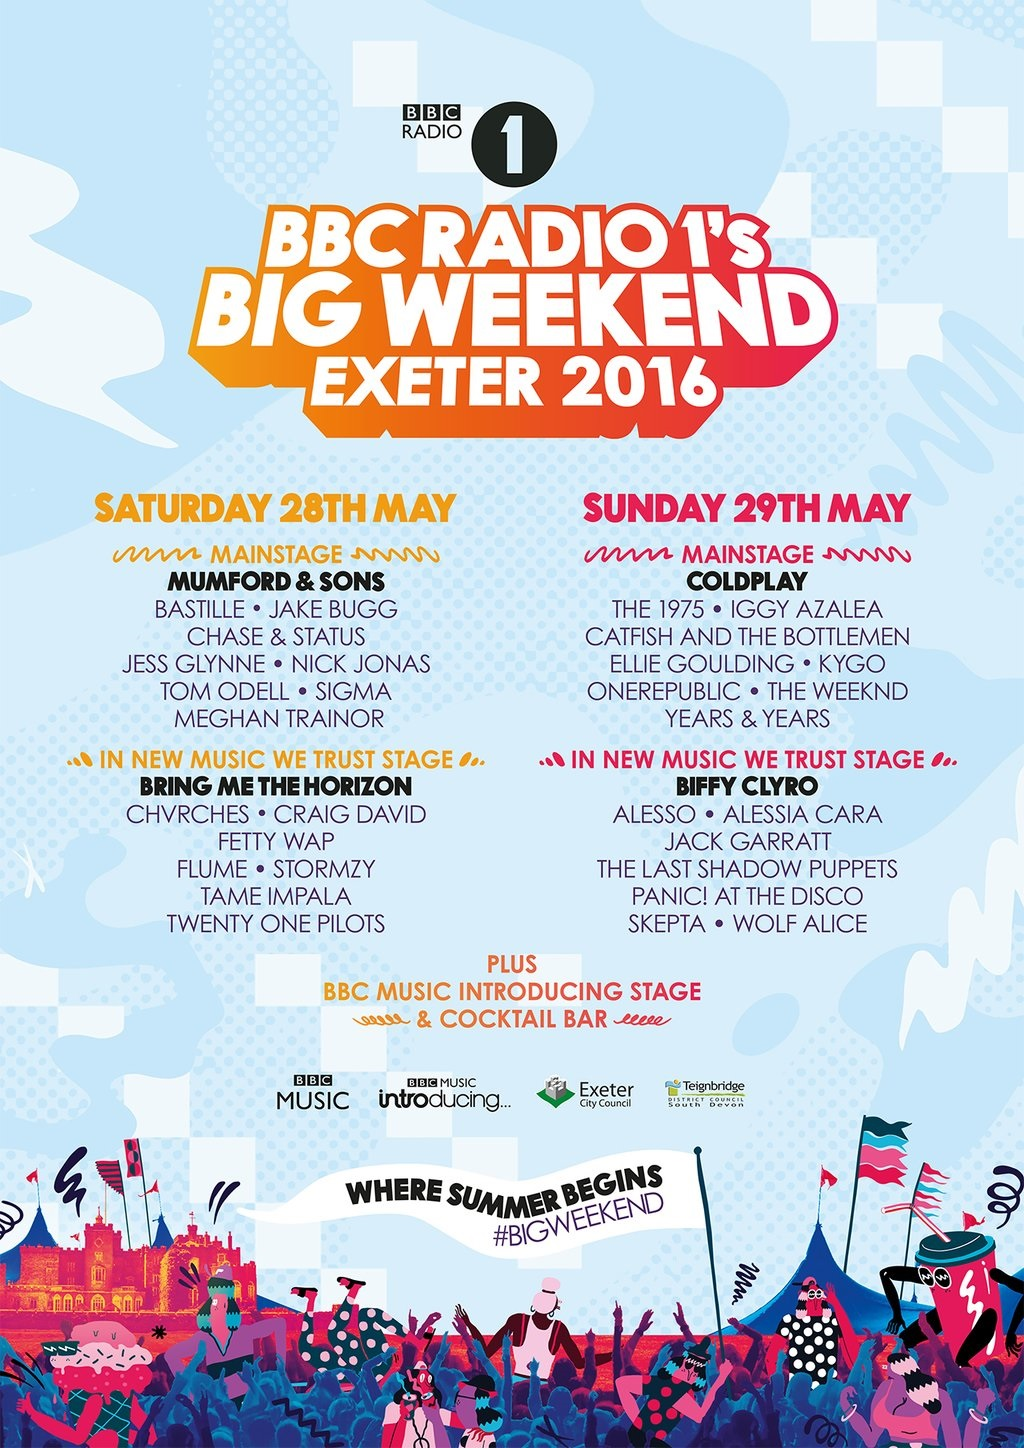 The full lineup for Radio 1's Big Weekend has been announced